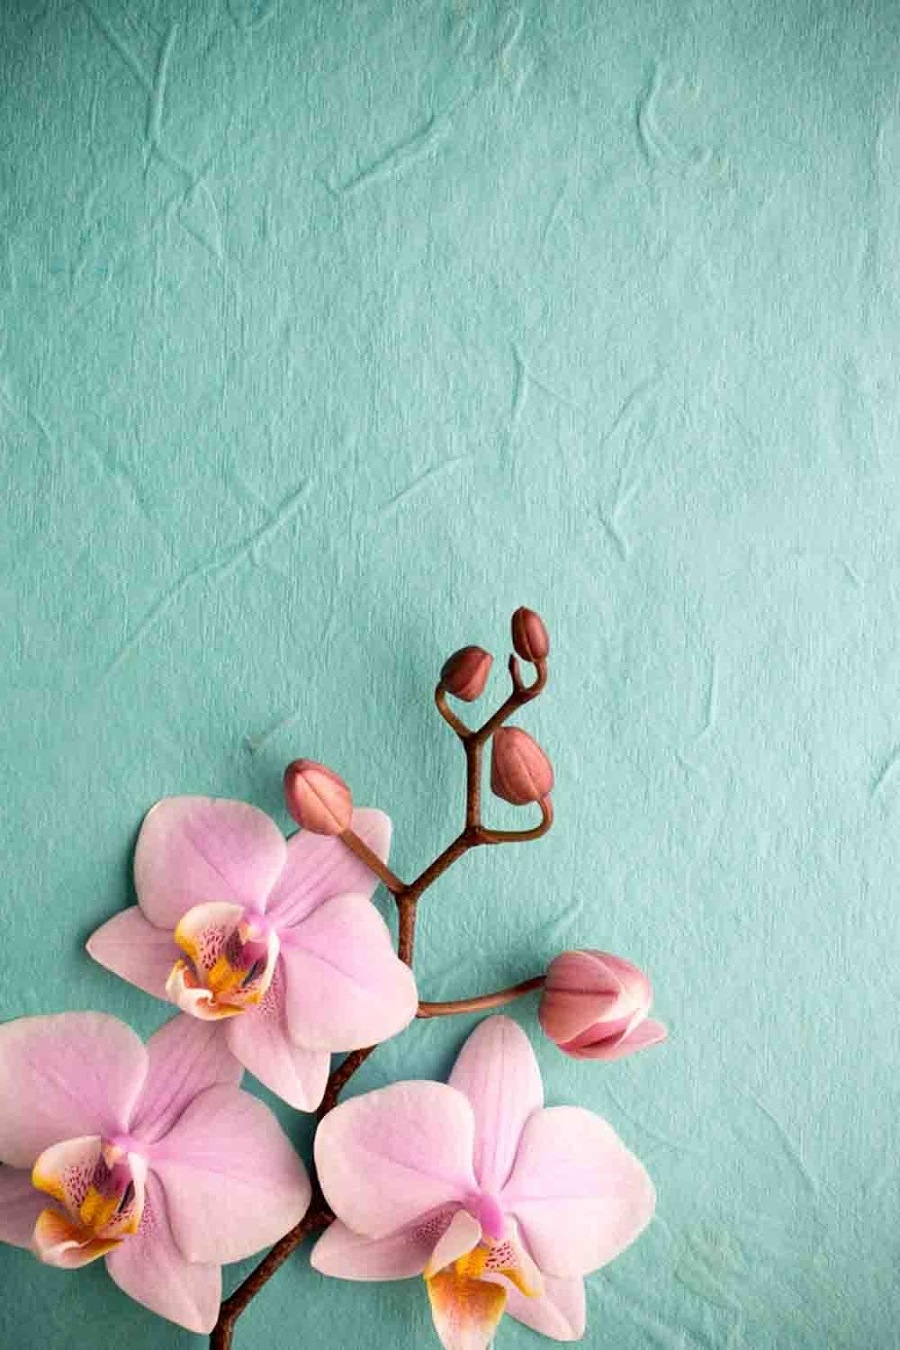 Iphone 5 Wallpaper Cute Pinterest Pink Orchid Wallpaper Iphone 3d Iphone Wallpaper